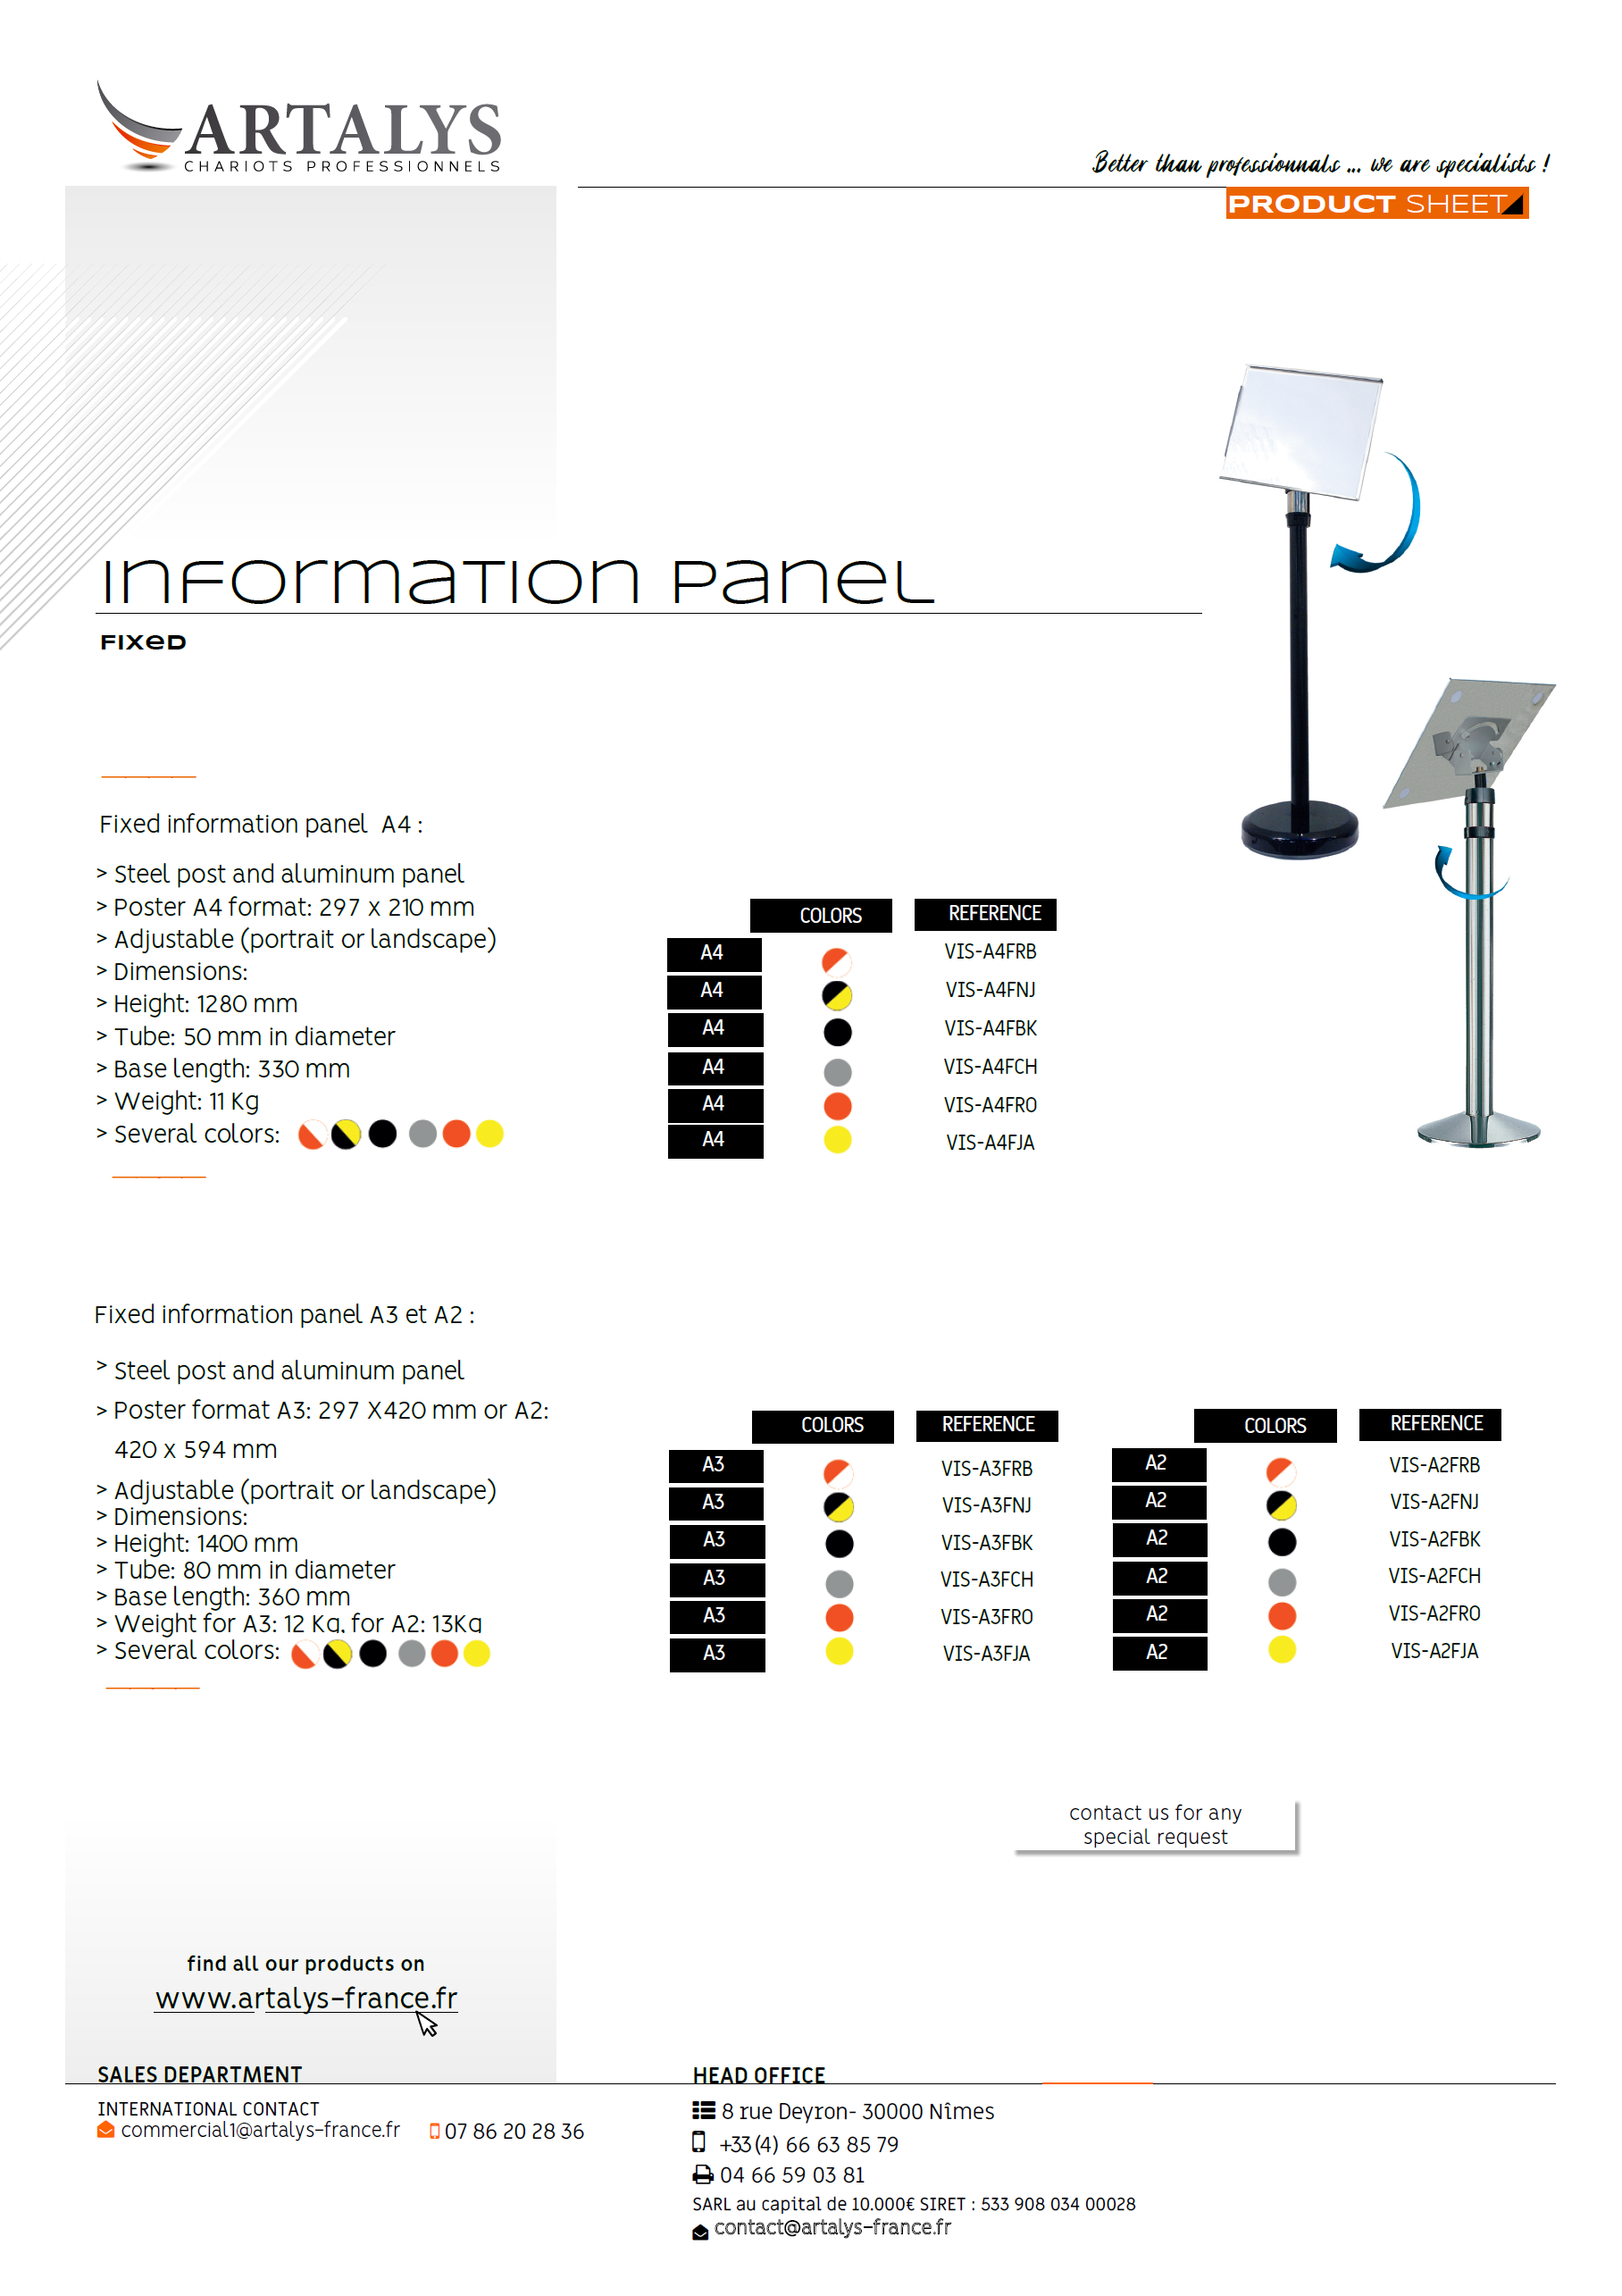 Product sheet of our information panel fixed